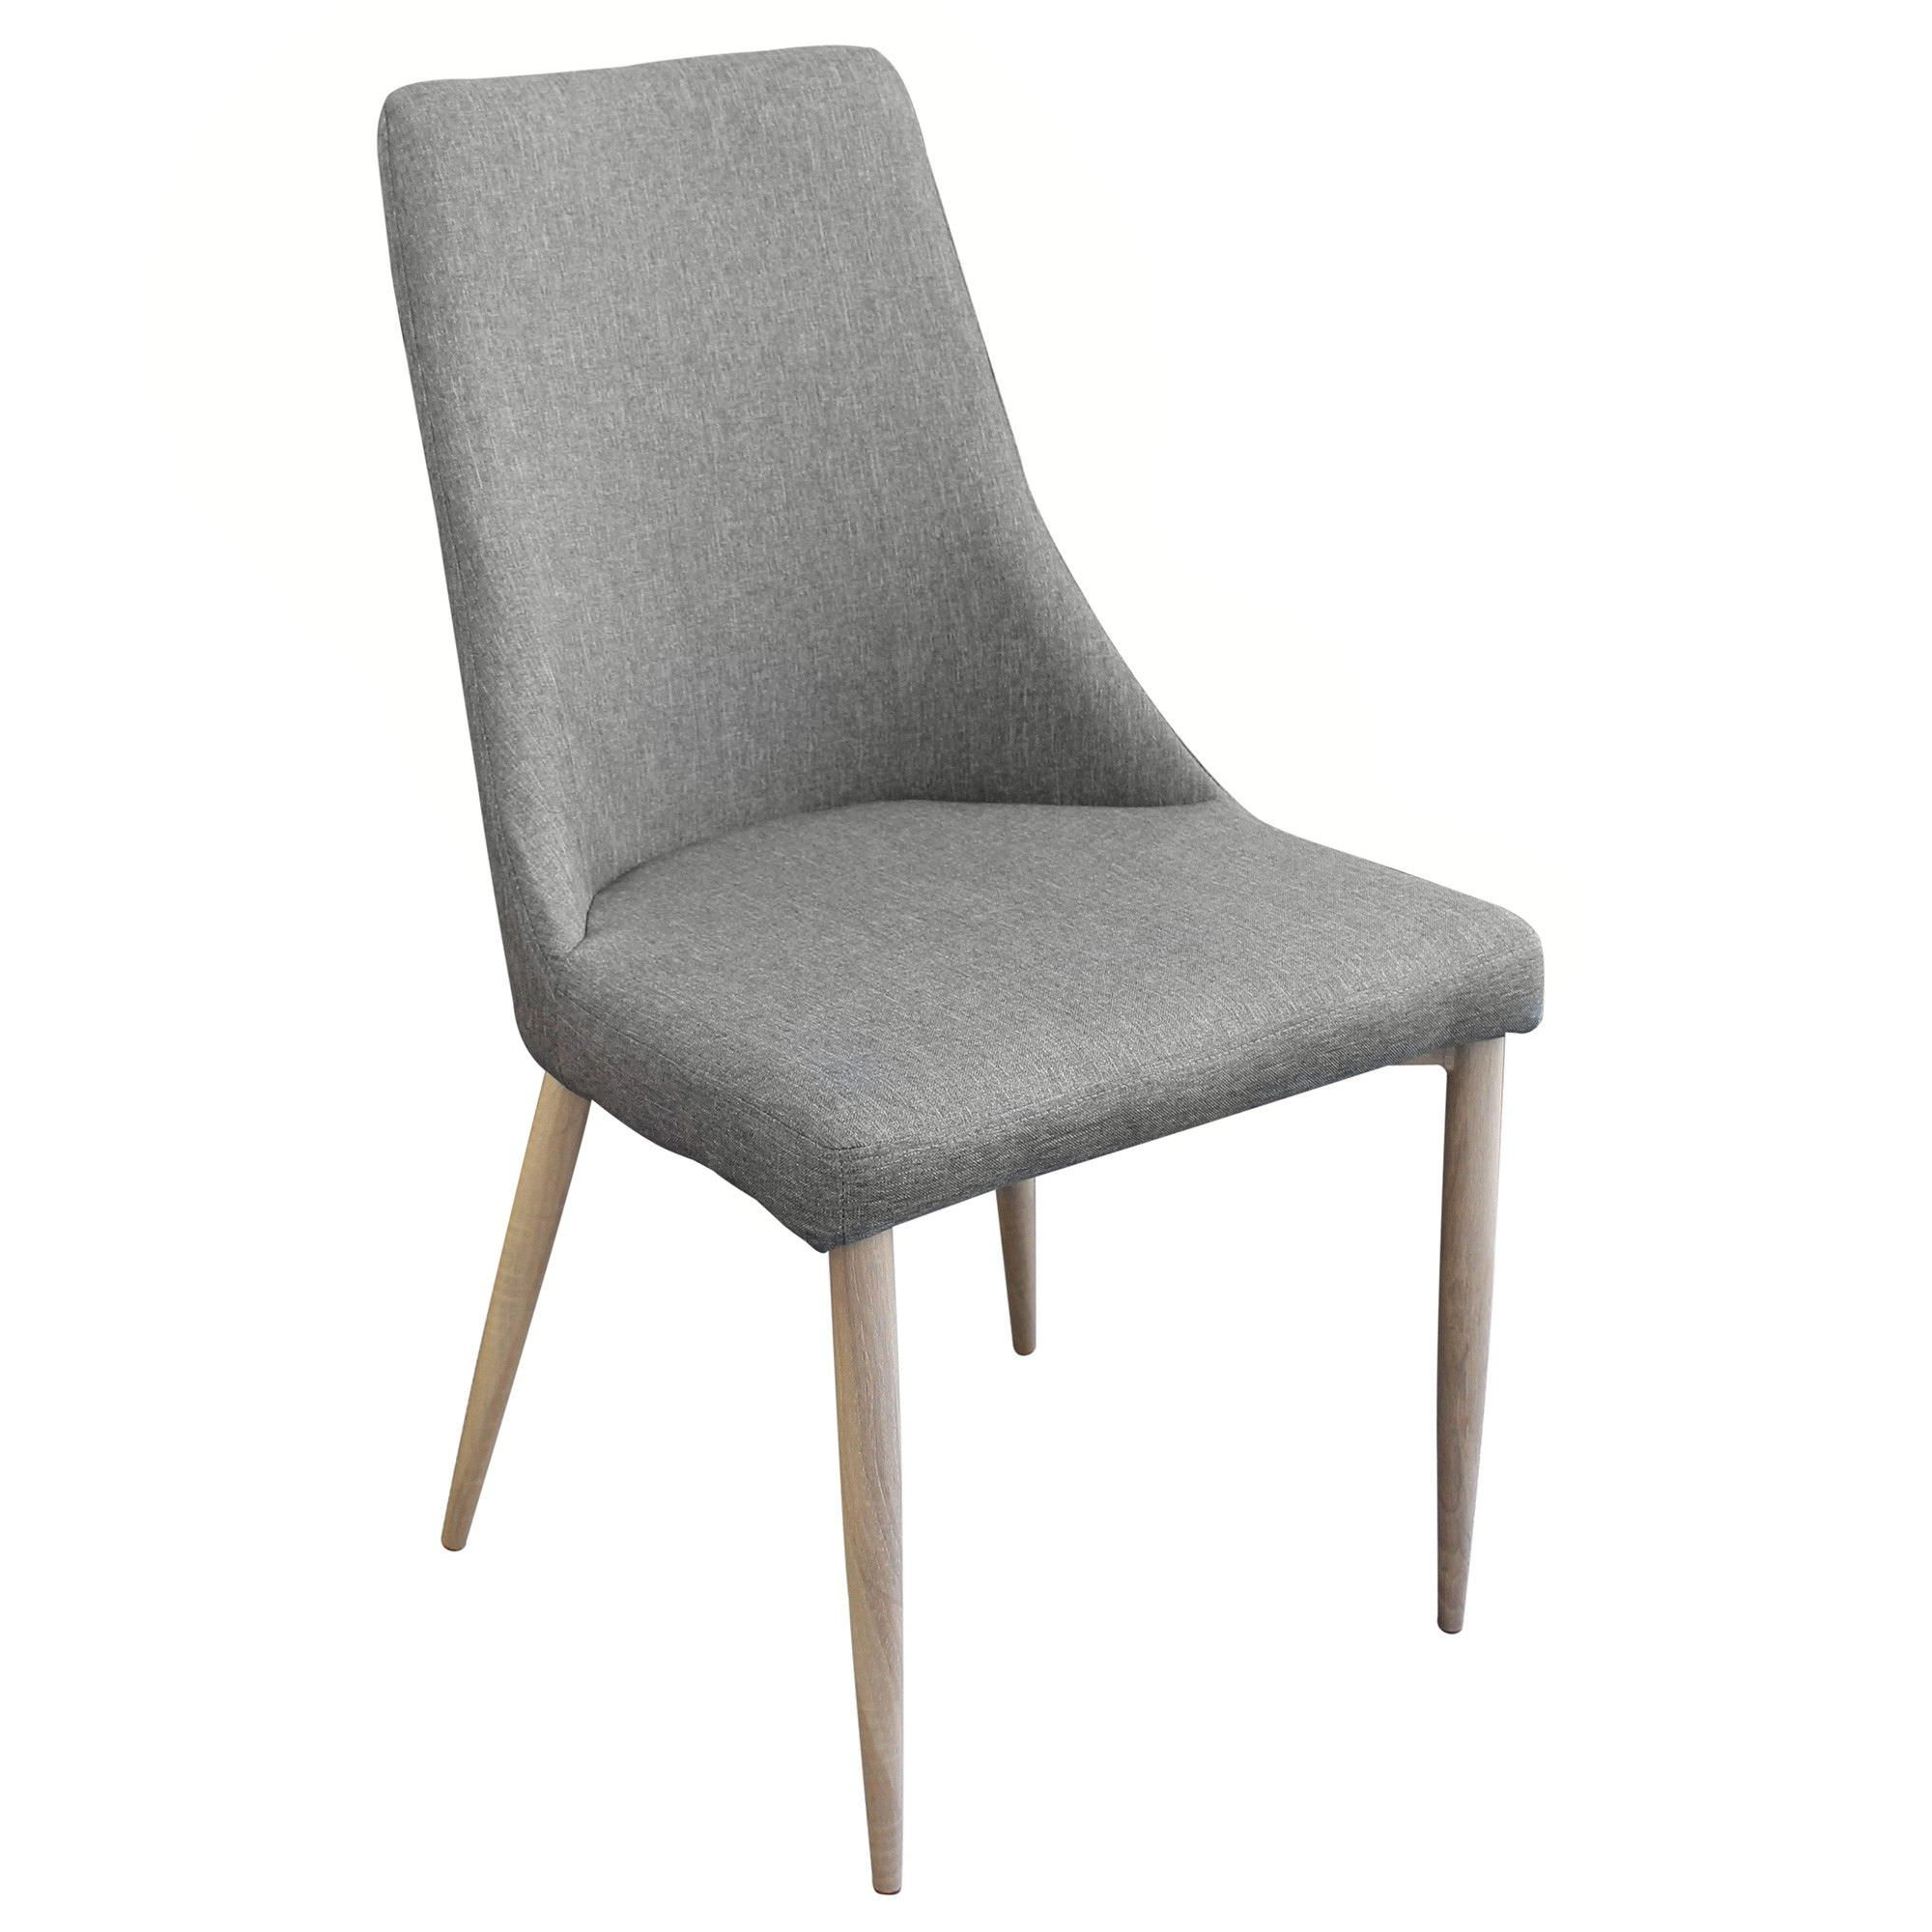 Kingsley Fabric Dining Chair, Grey / Natural